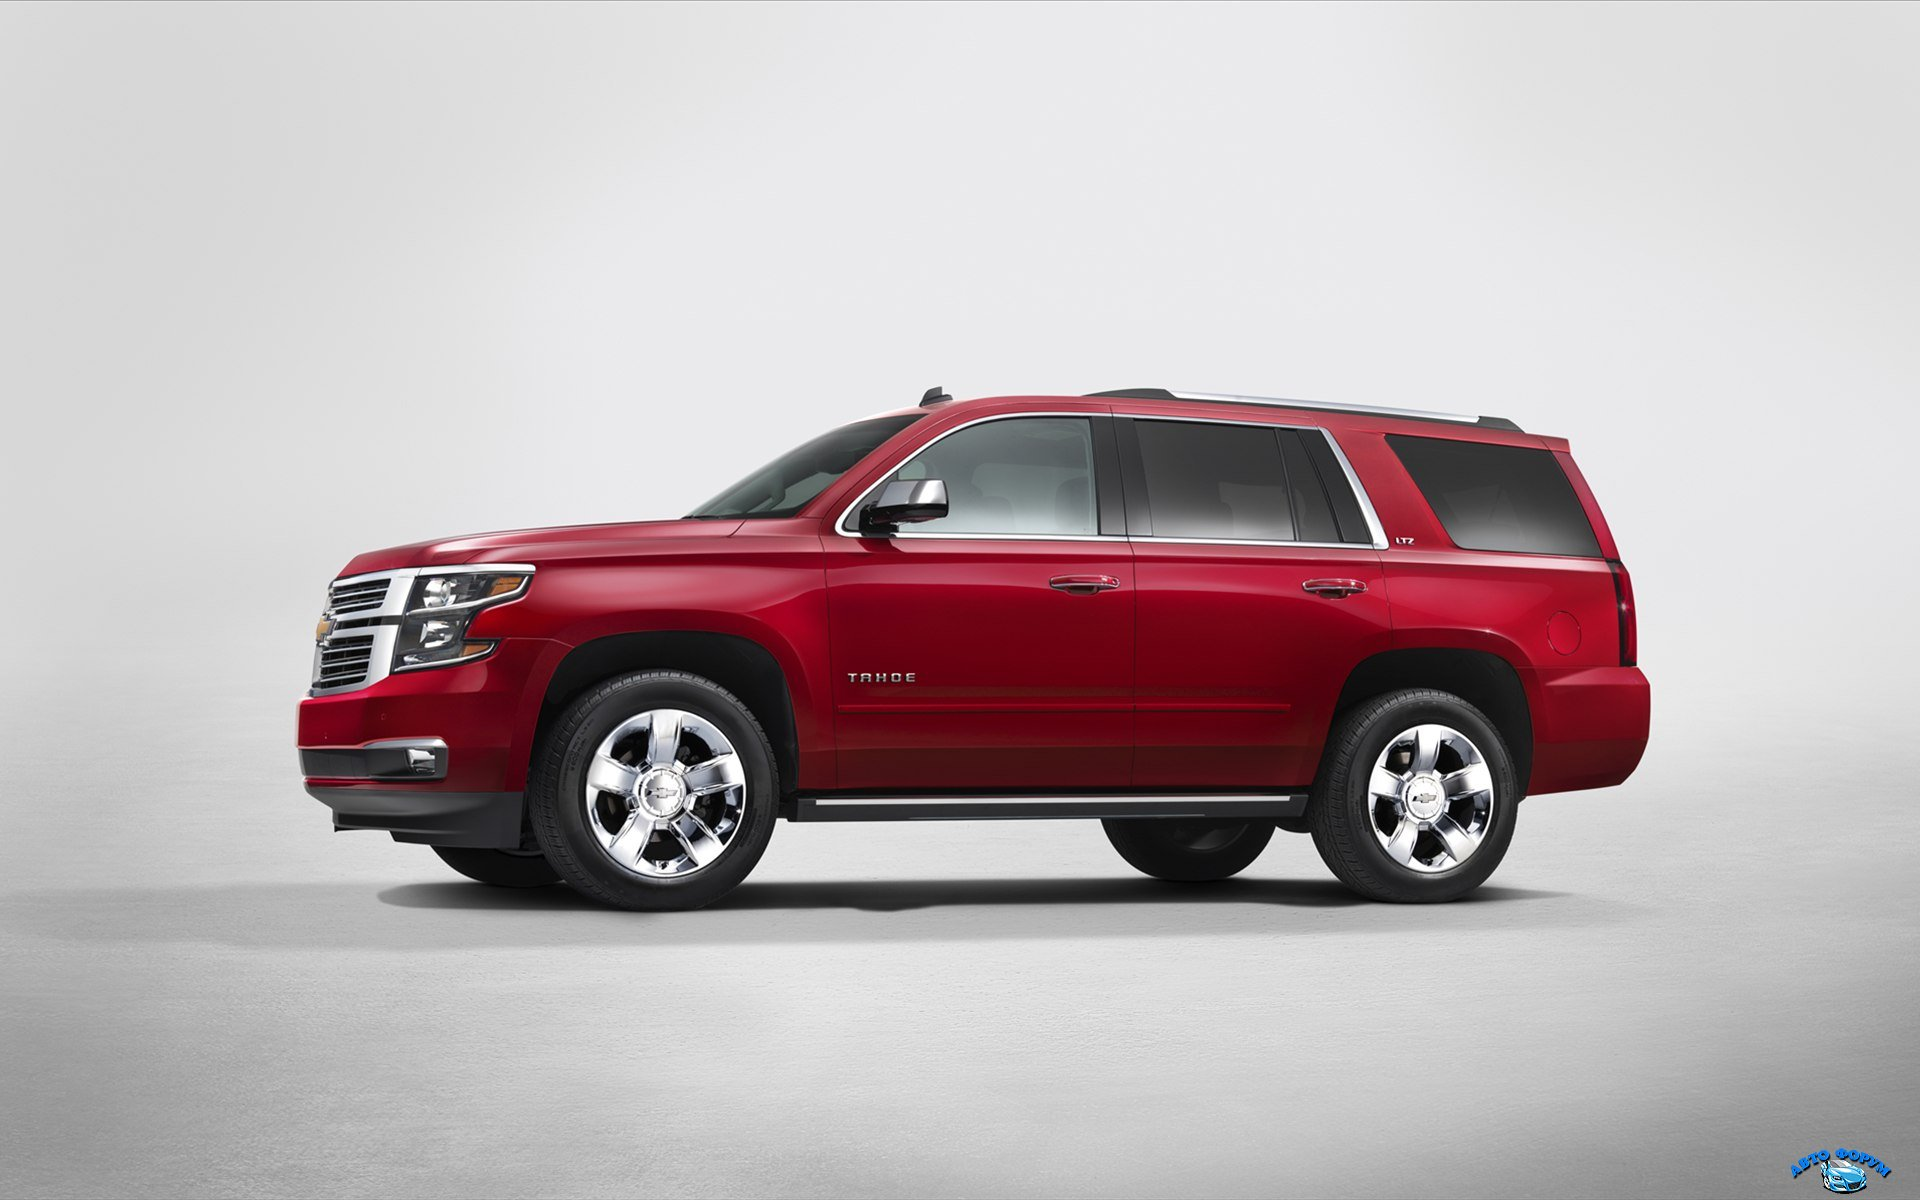 Chevrolet-Tahoe-2015-widescreen-05.jpg